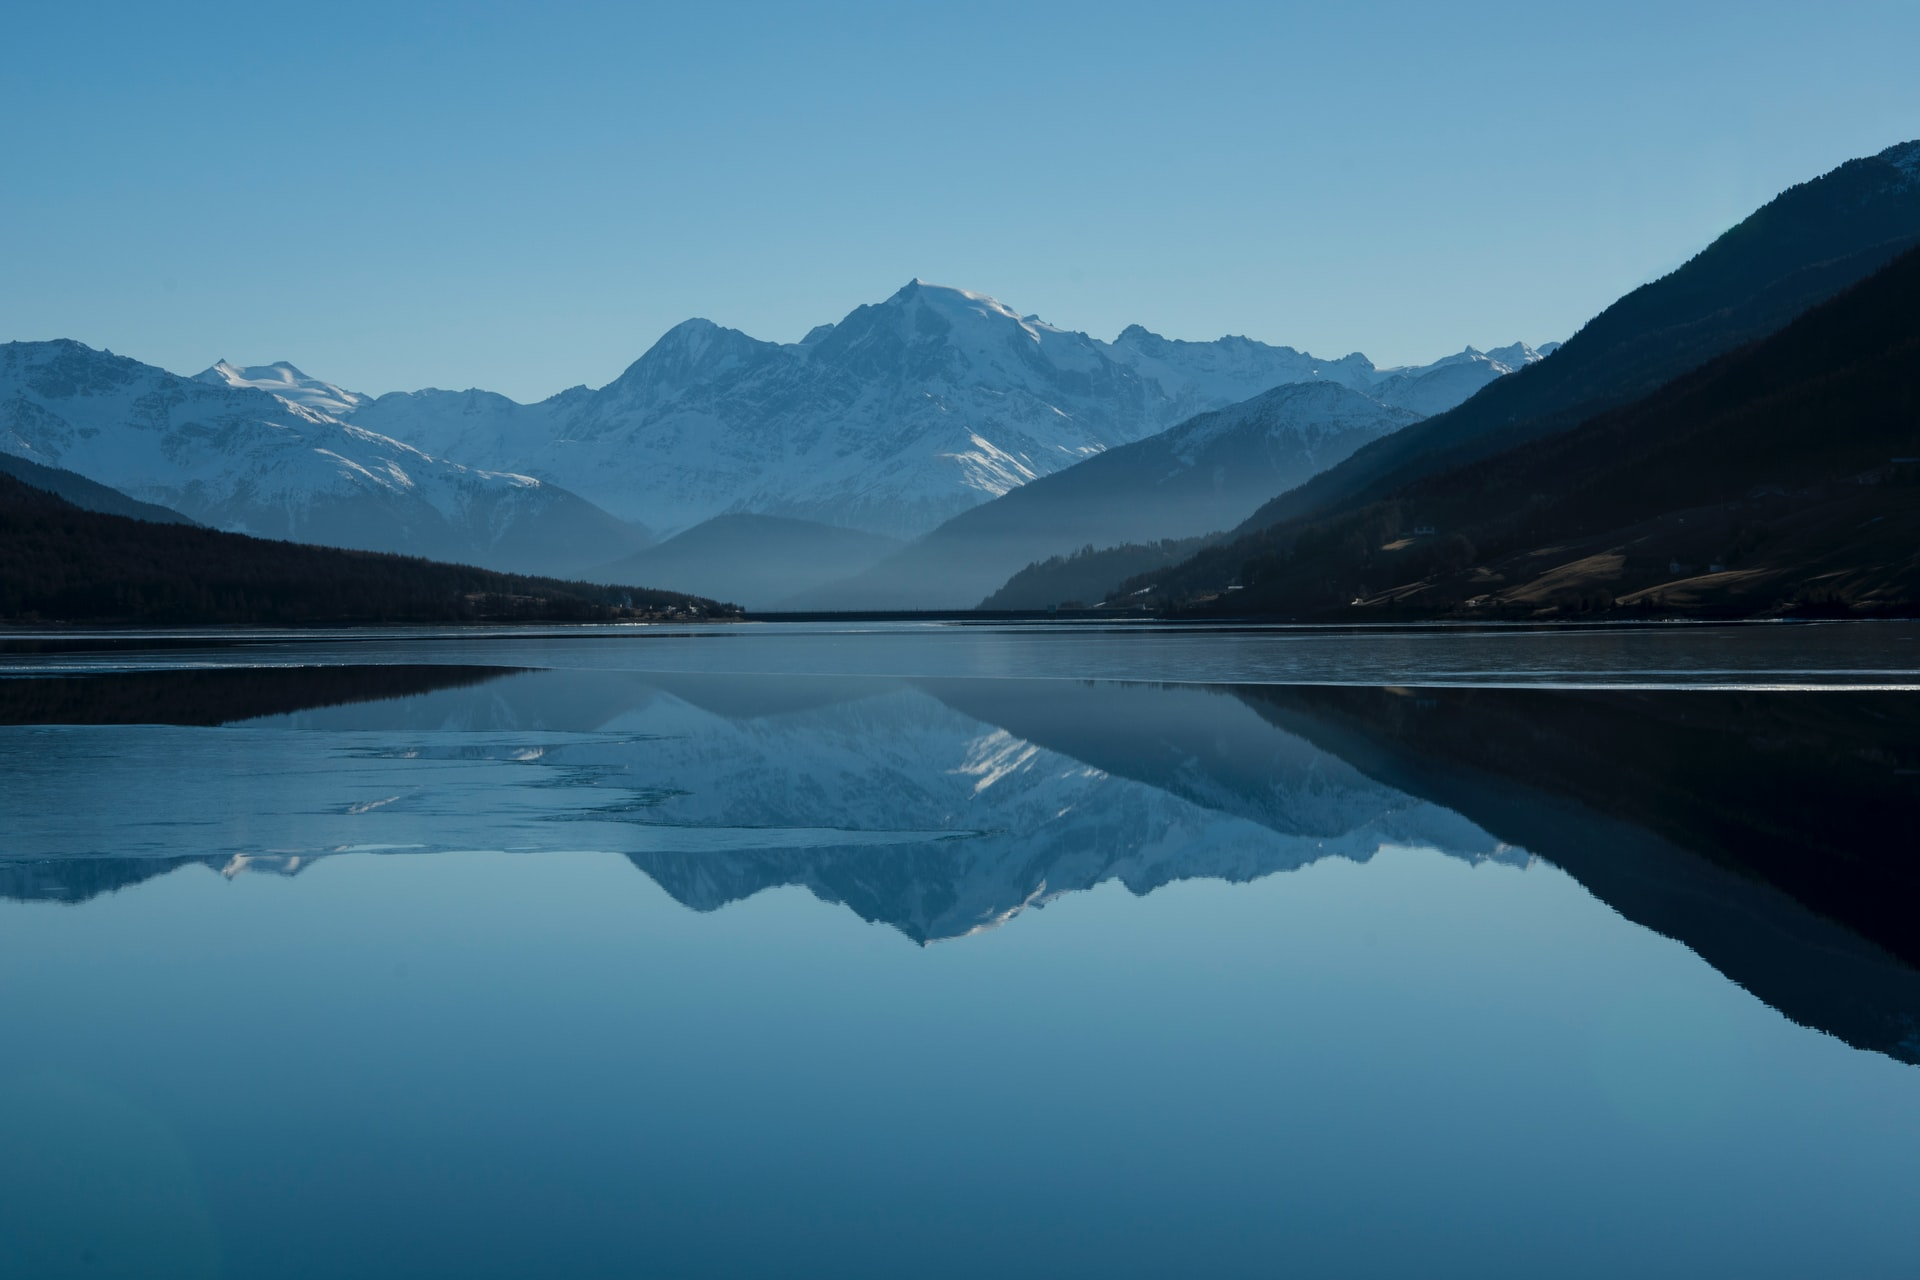 Mountains Reflected on Water